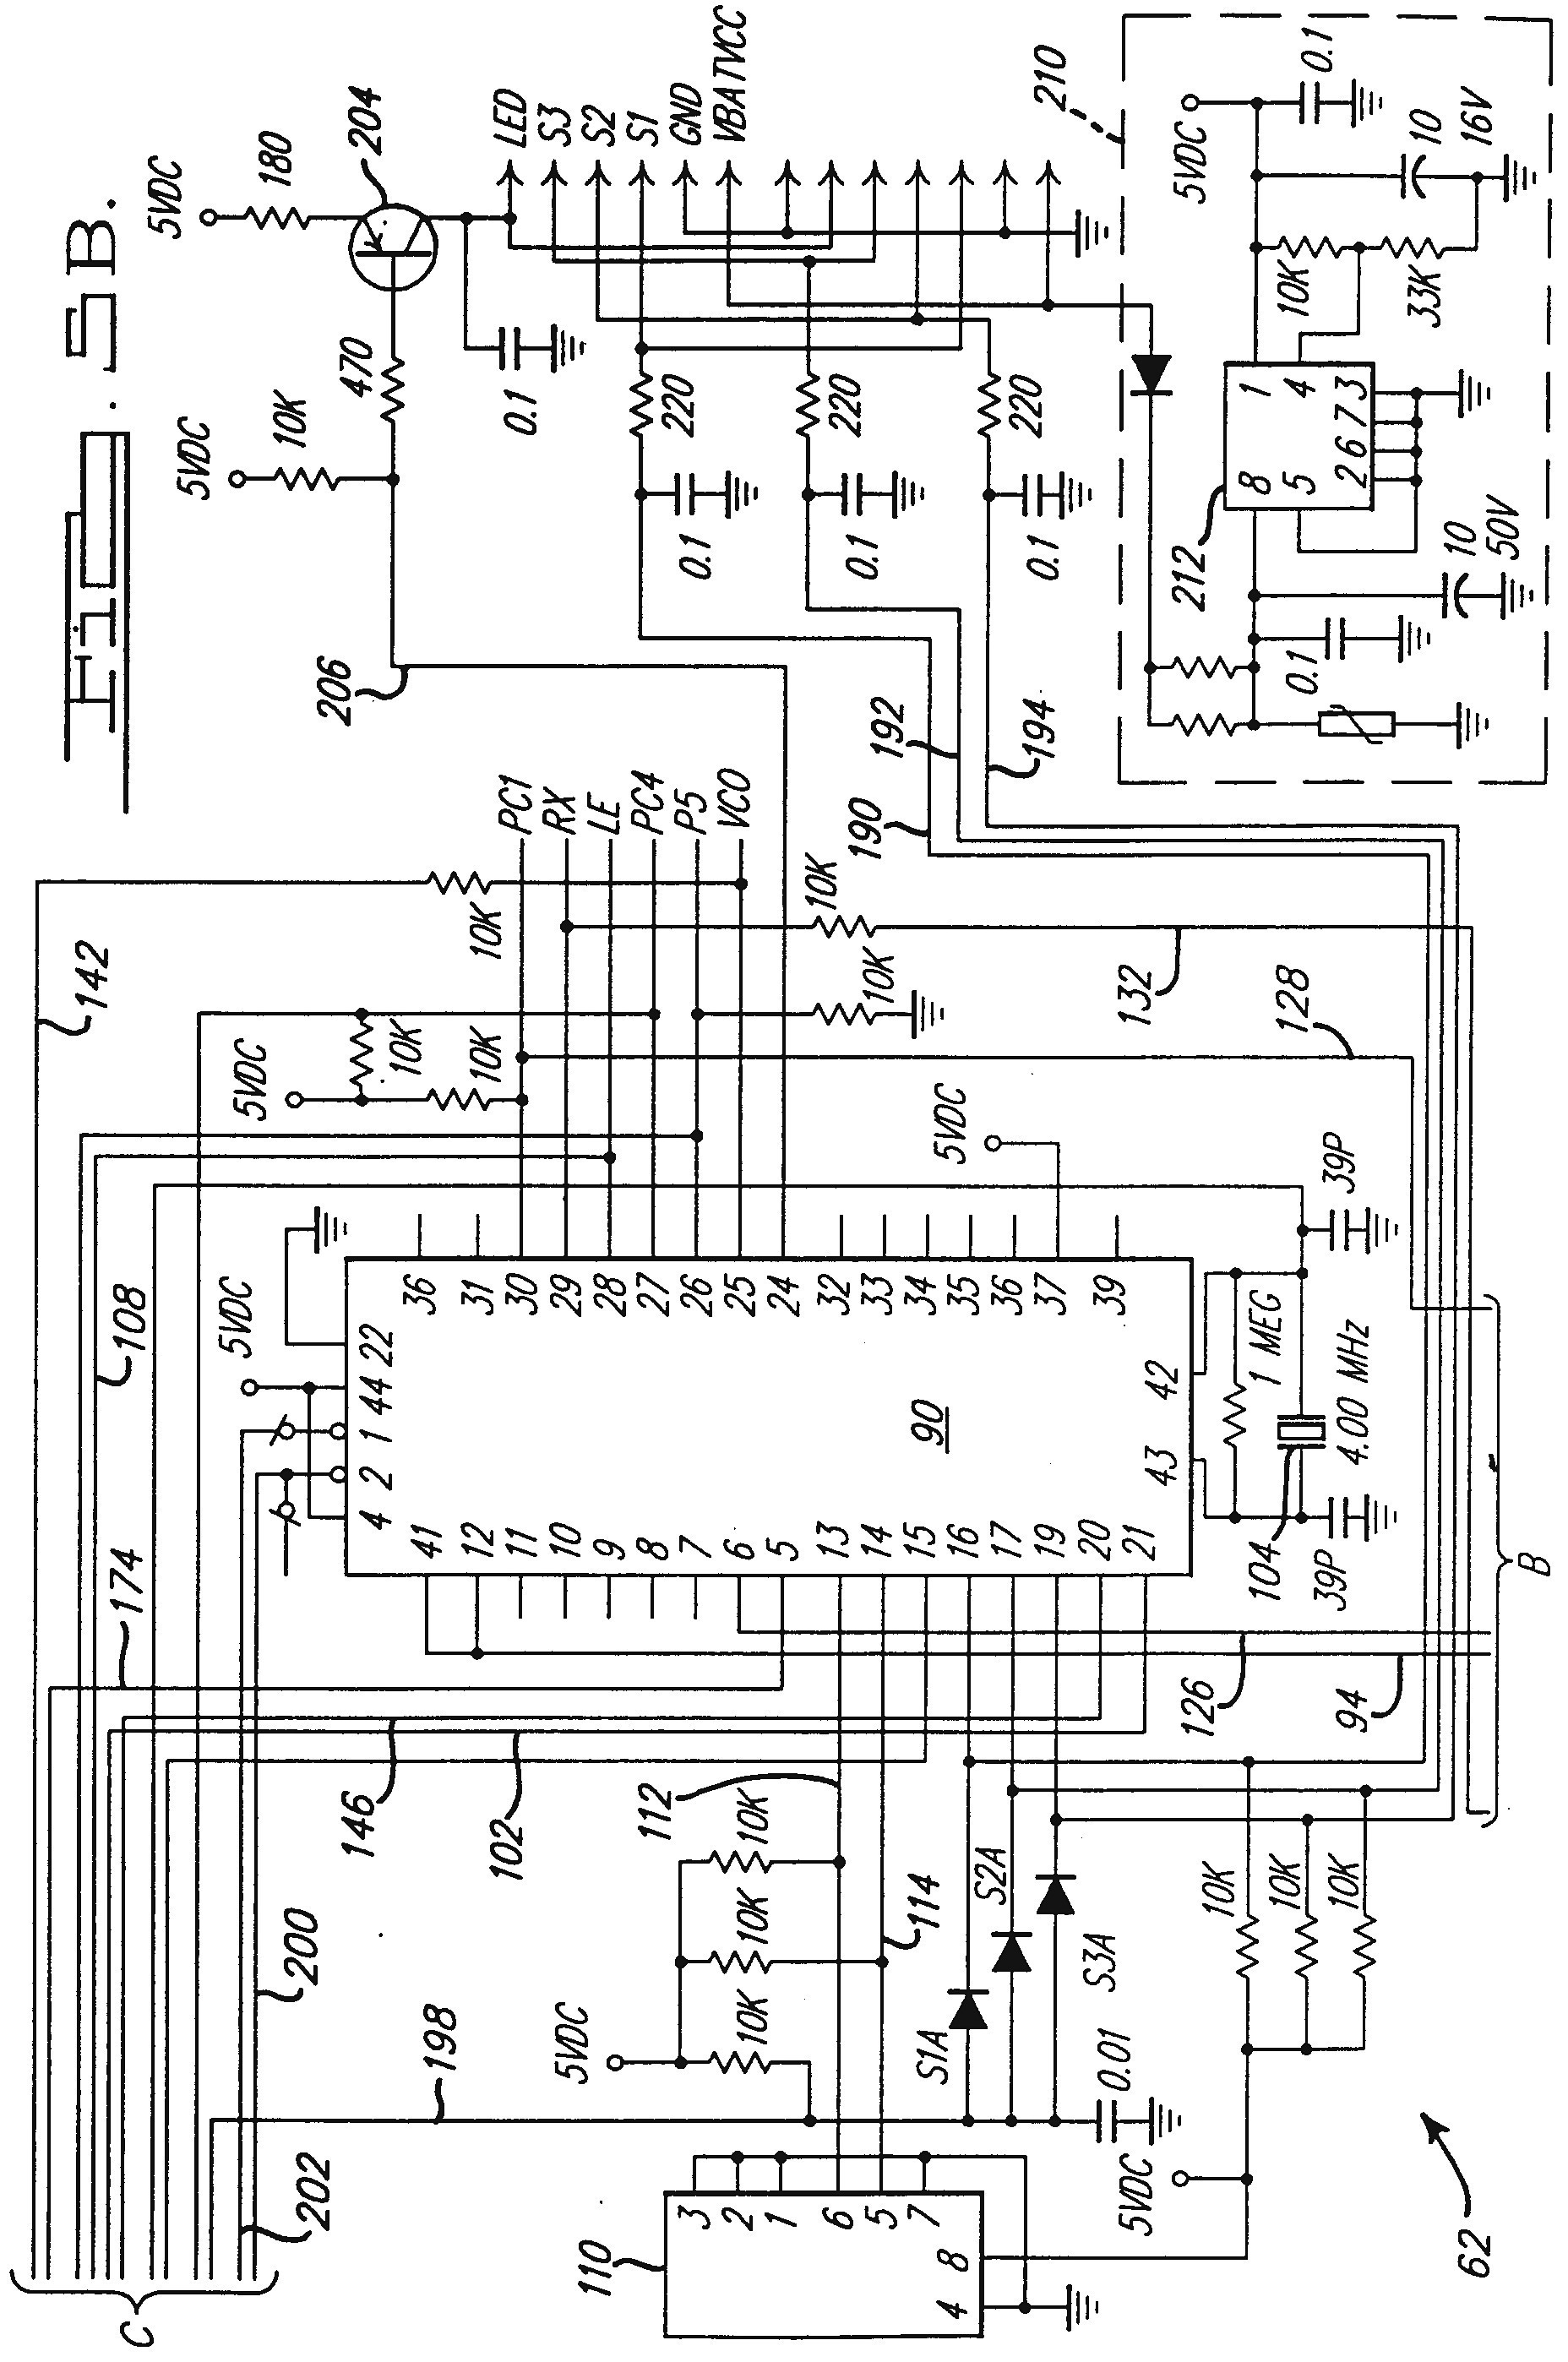 j 380 circuit board wiring diagram genie garage door sensor    wiring       diagram    free    wiring       diagram     genie garage door sensor    wiring       diagram    free    wiring       diagram